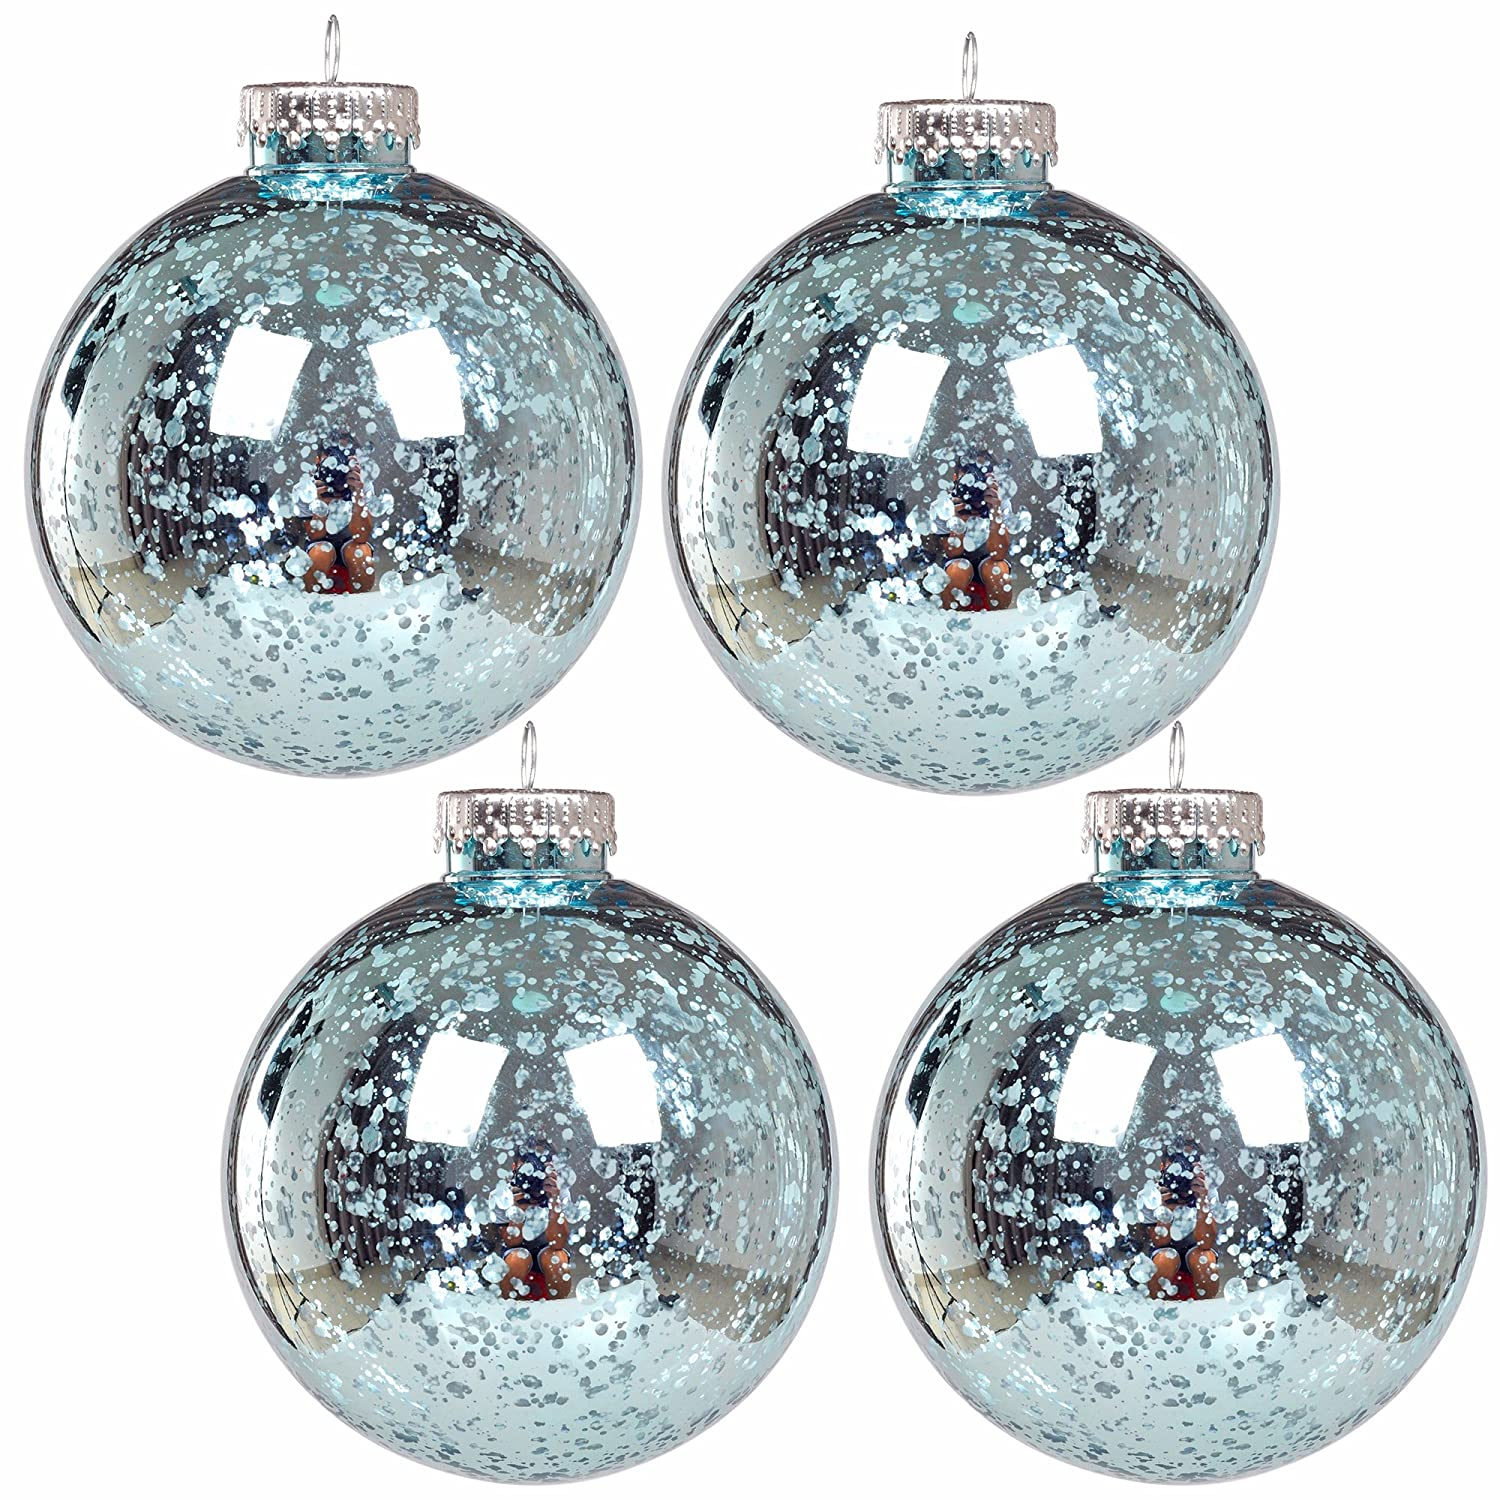 Christmas Teal Mercury Ball Vintage Ornaments Set of 4